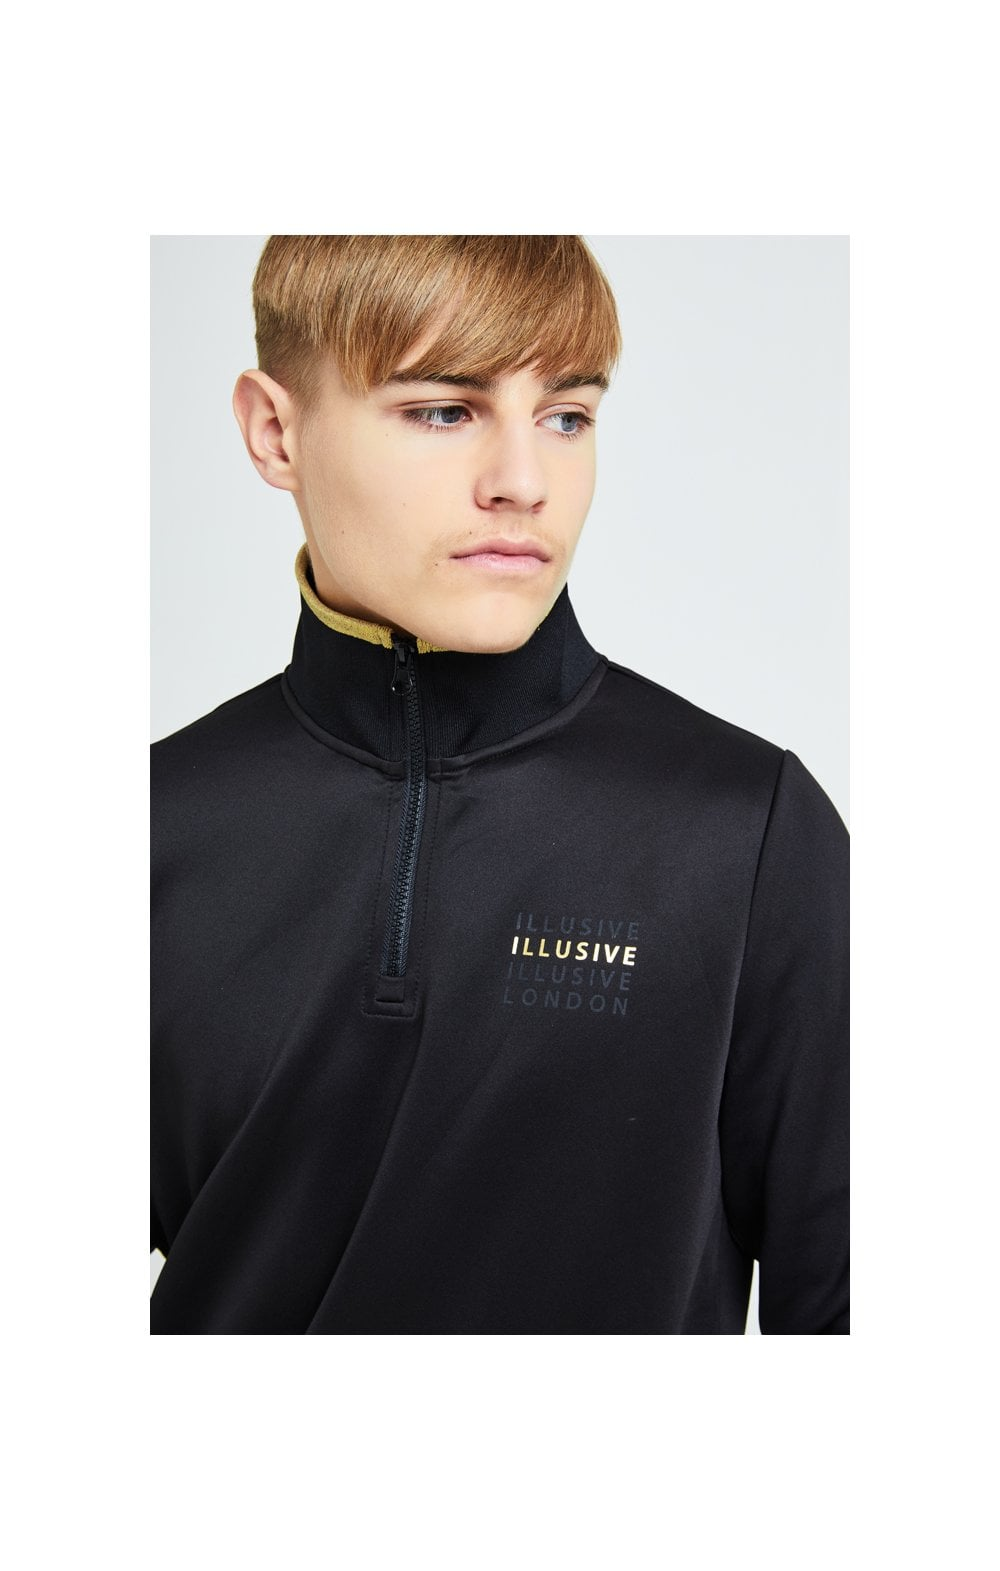 Illusive London Sovereign 1/4 Zip Hoodie  - Black & Gold (1)